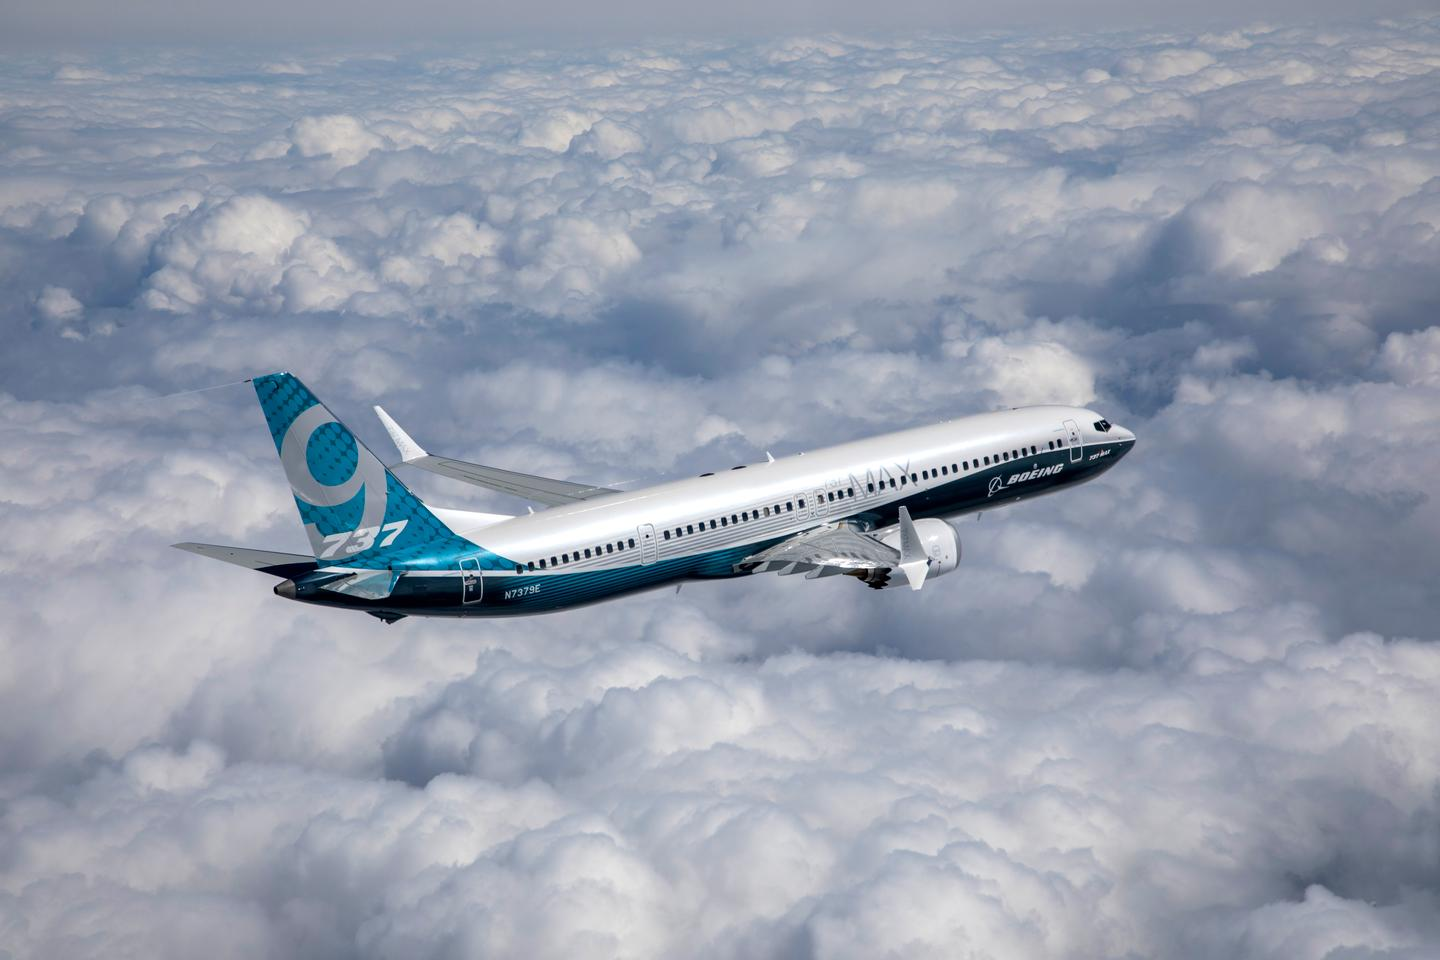 The 737 MAX 9 made its maiden flight in April and is now on its way to Paris